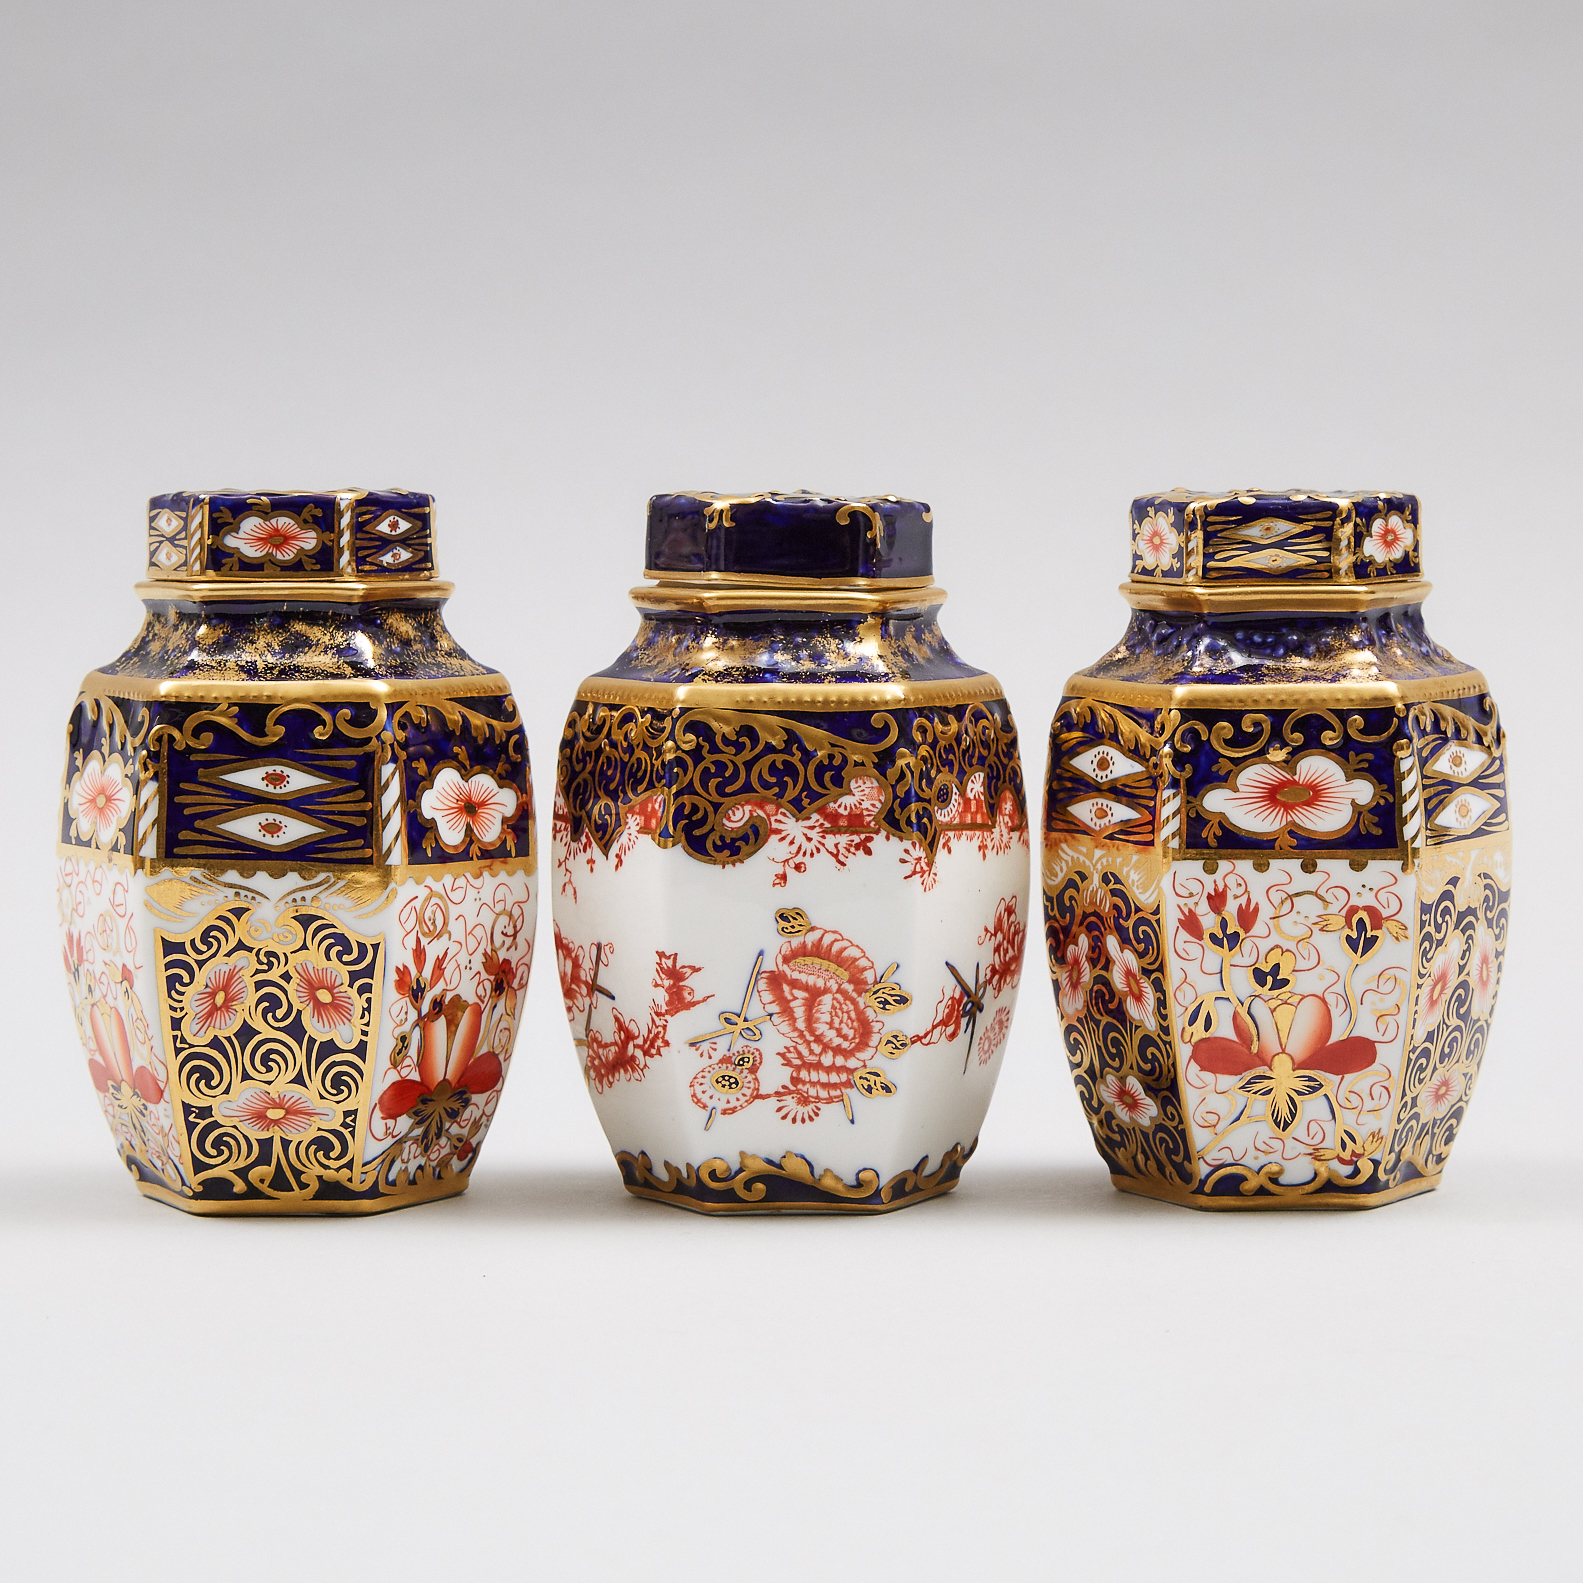 Three Royal Crown Derby 'Imari' (2451) and Japan (2649) Pattern Hexagonal Tea Caddies with Covers, c.1905-16